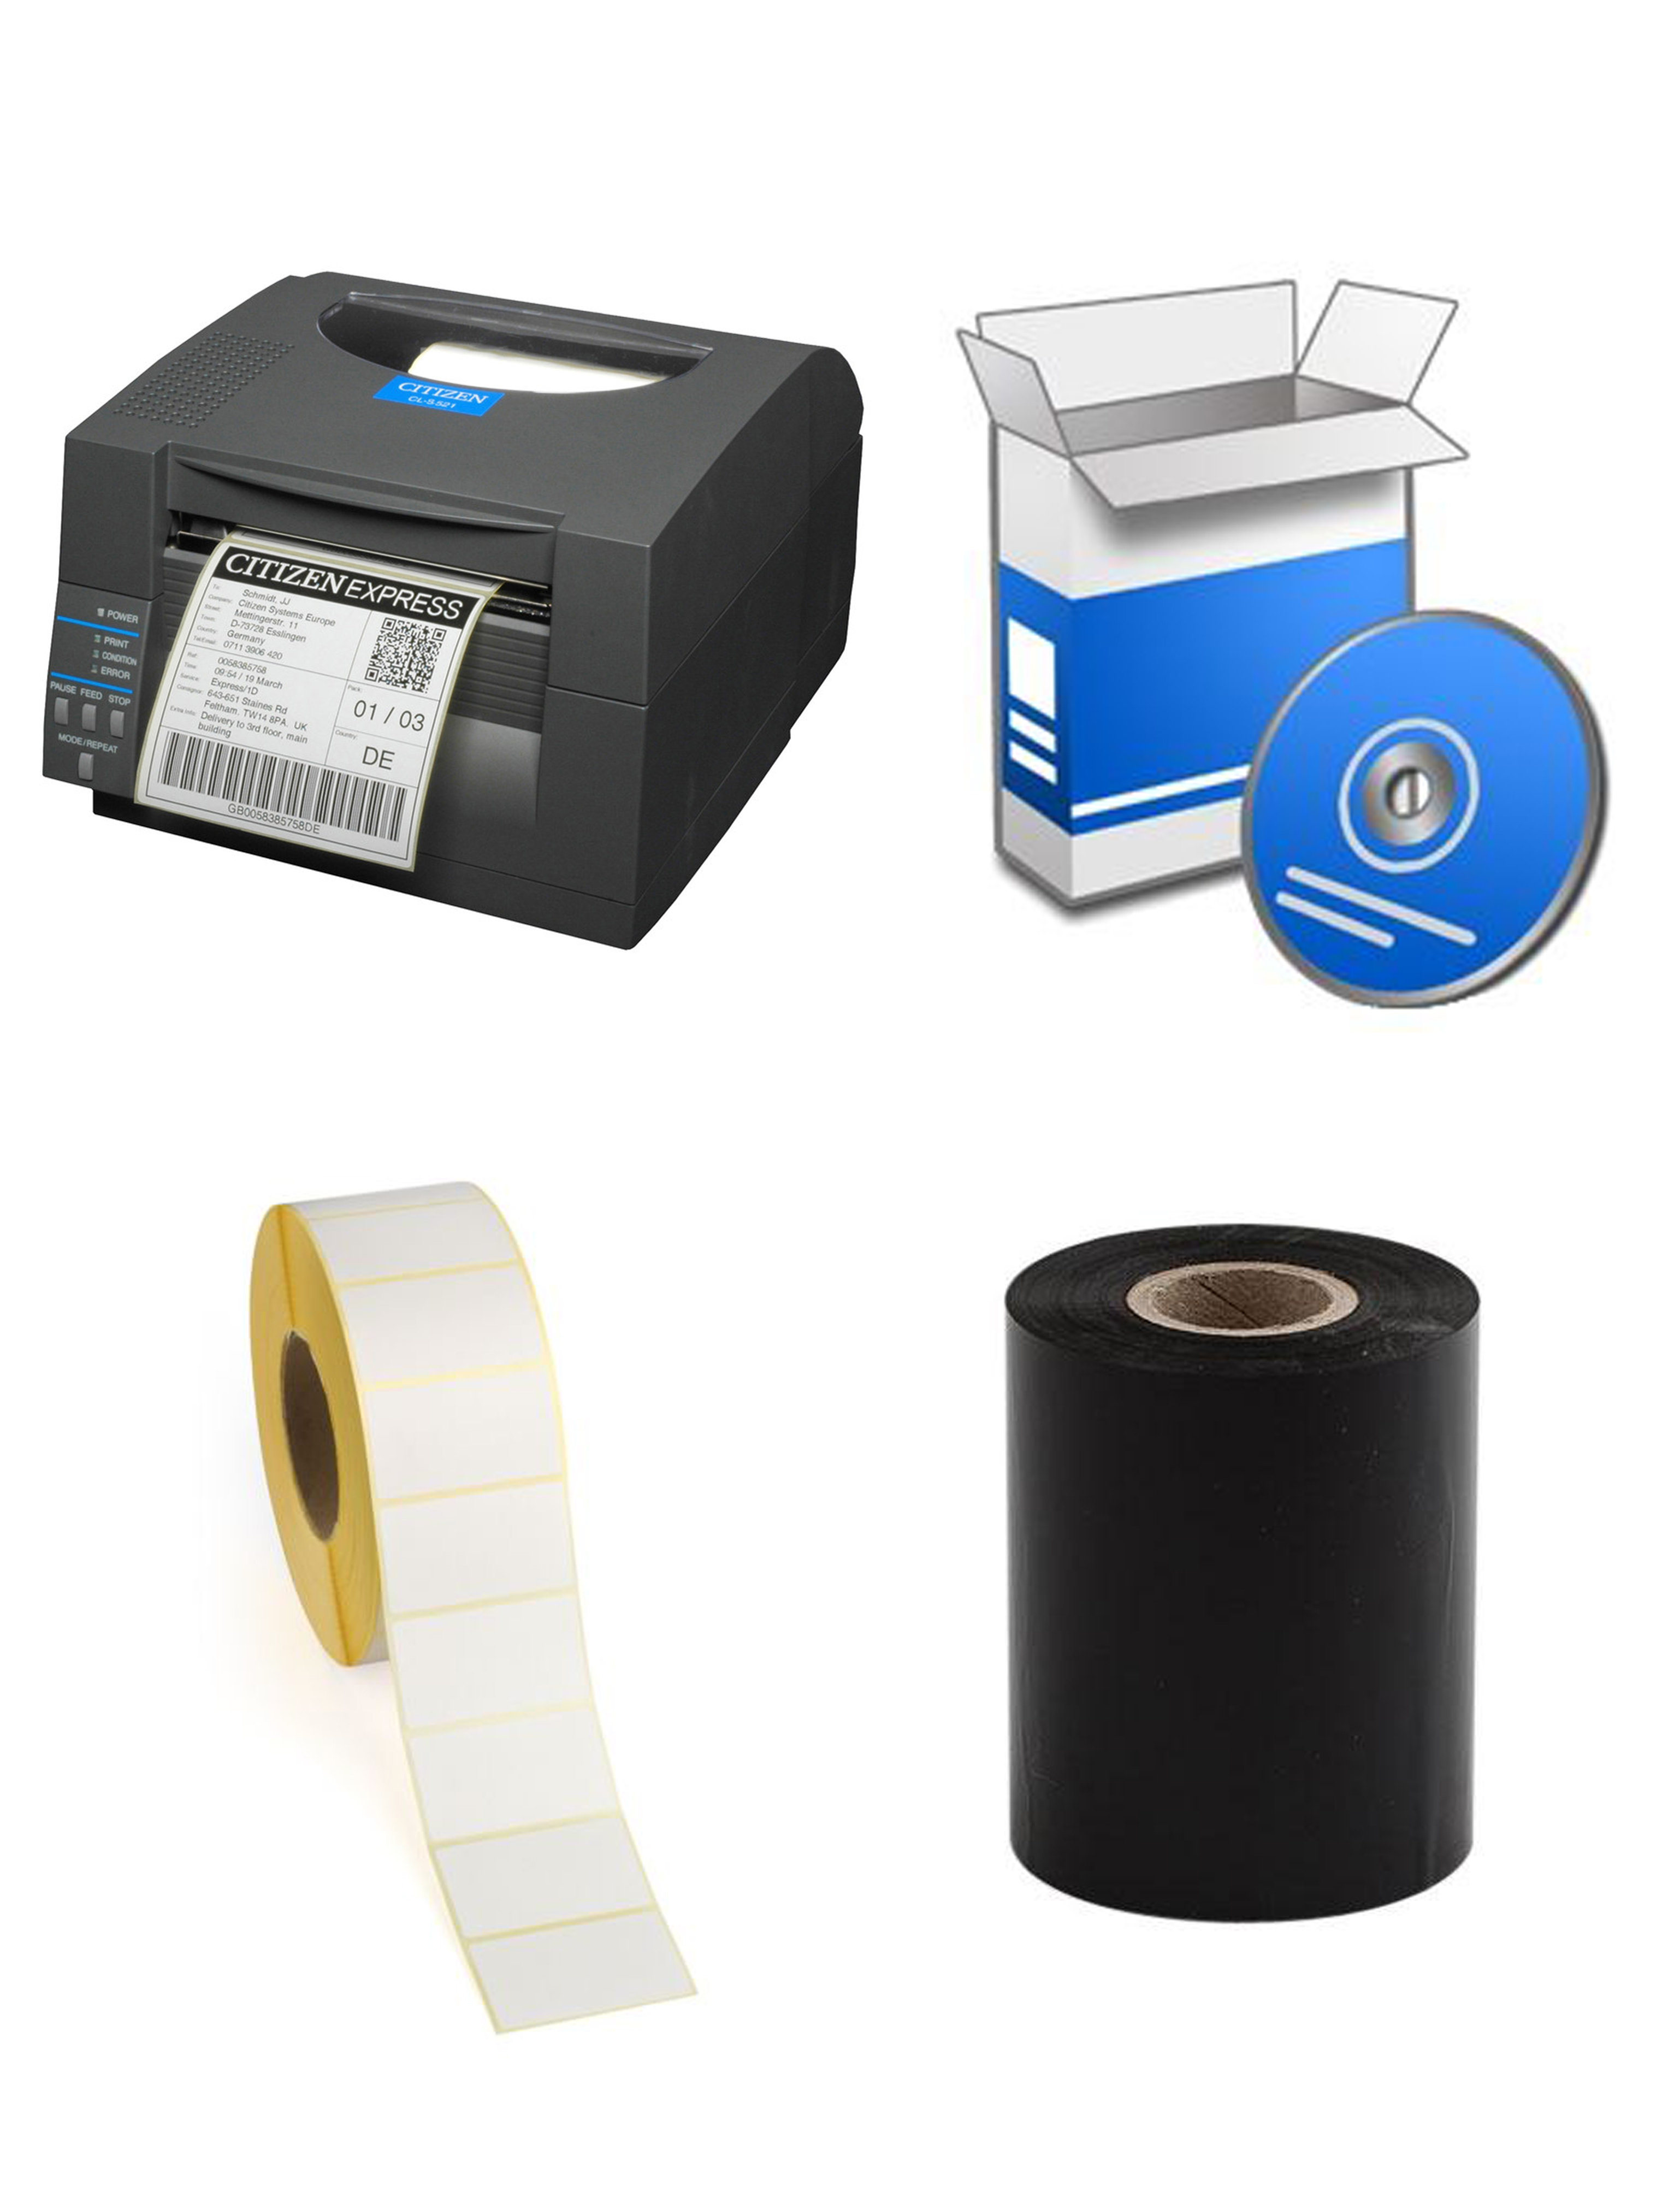 Printer Packages